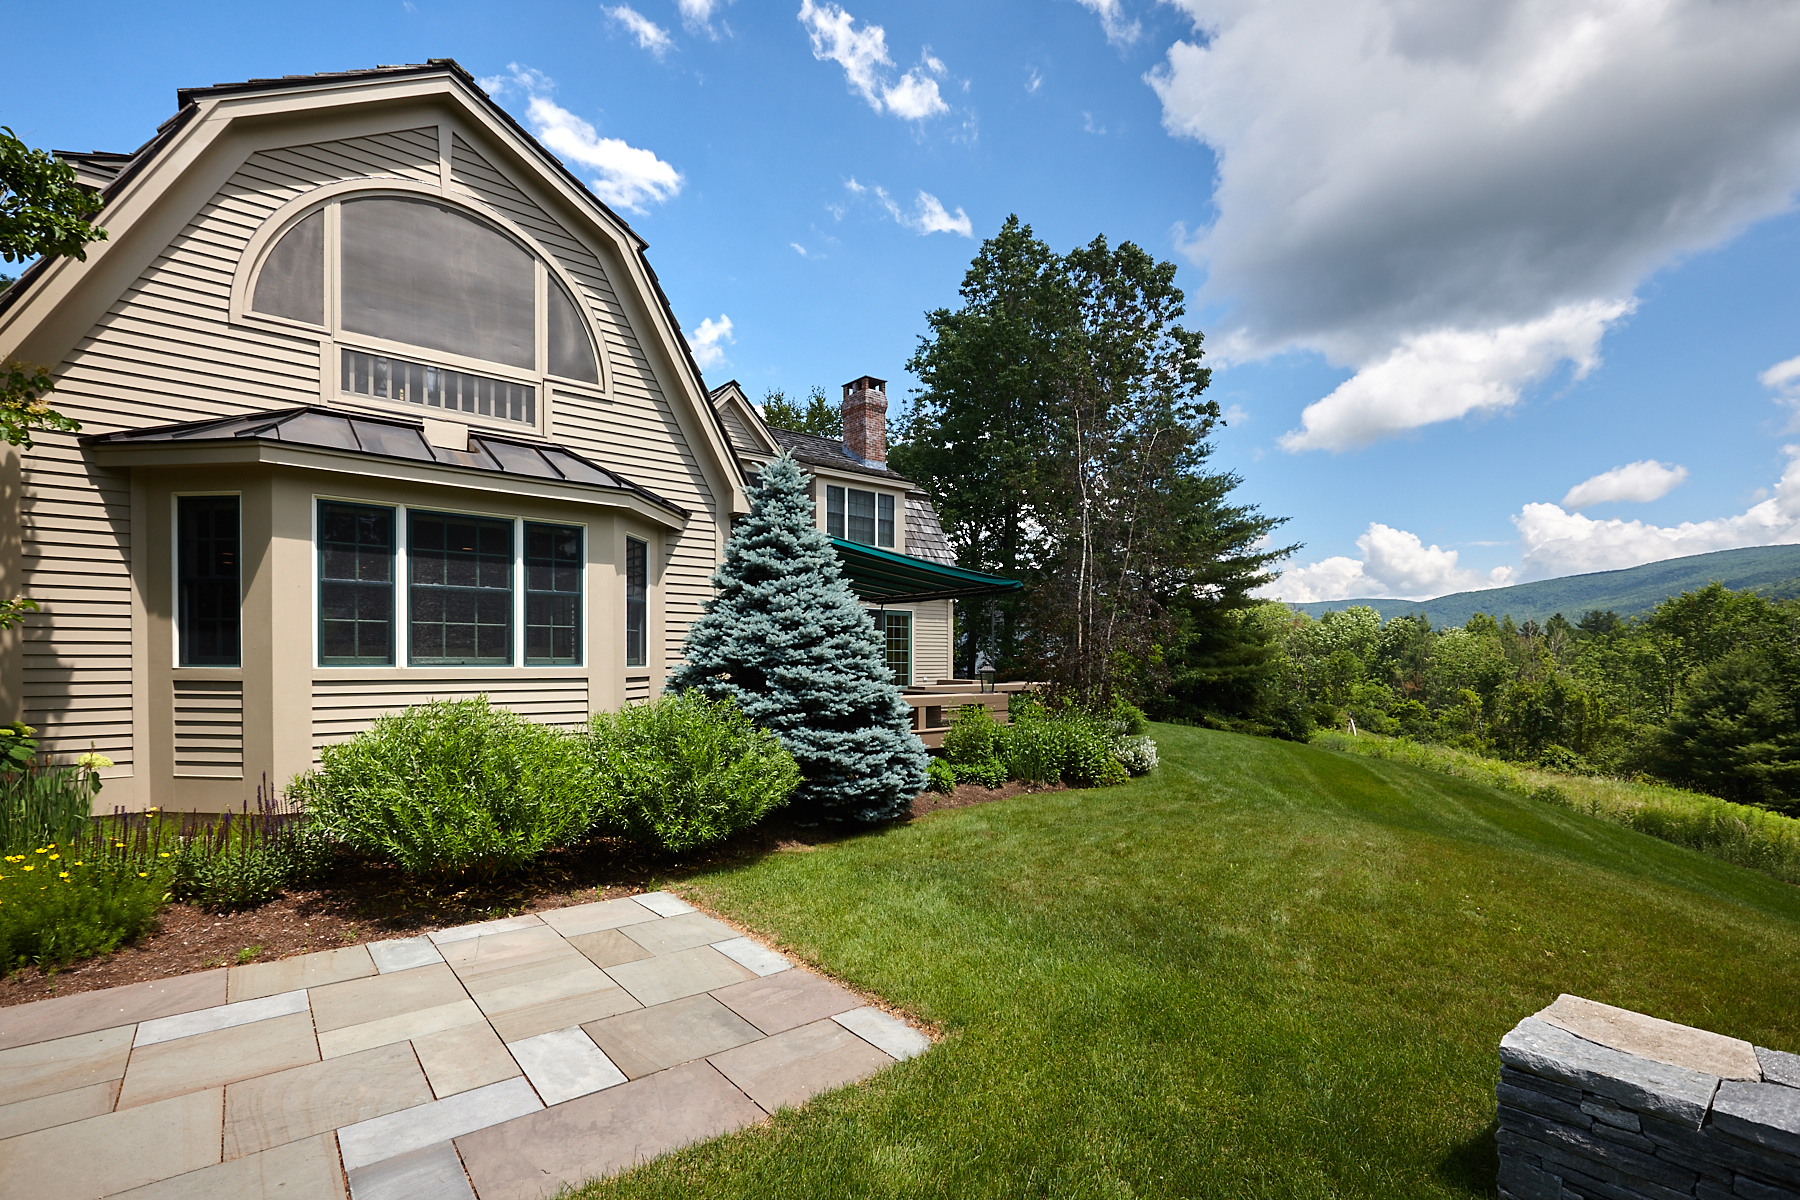 Single Family Home for Sale at Beautifully Appointed Ormsby Hill Home 249 Edward Isham Rd Manchester, Vermont, 05255 United States